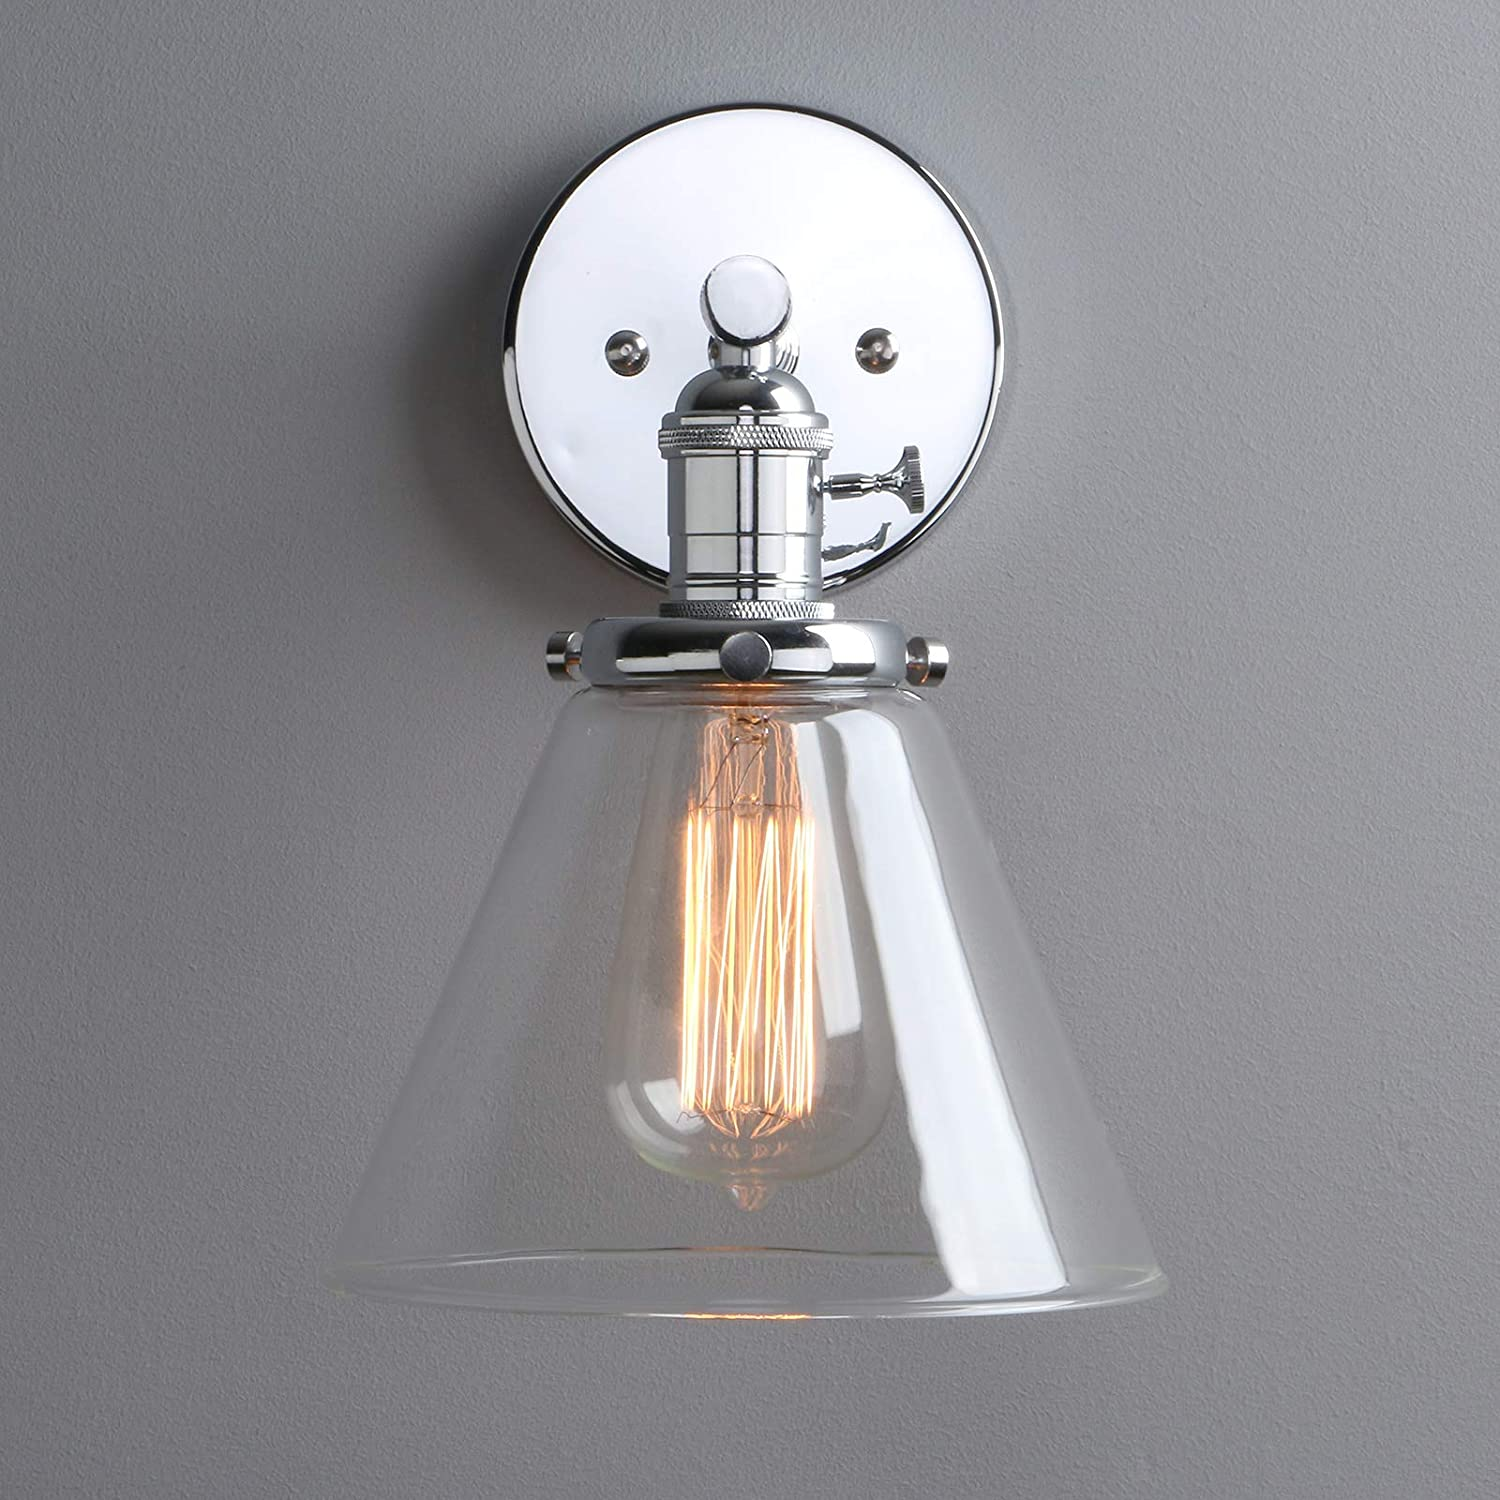 Hallways Phansthy Edison Industrial Wall Sconce 7.3 inch Vintage Brass Glass Wall Light Fixture Decorative Lighting for Kitchen Chrome Living Room